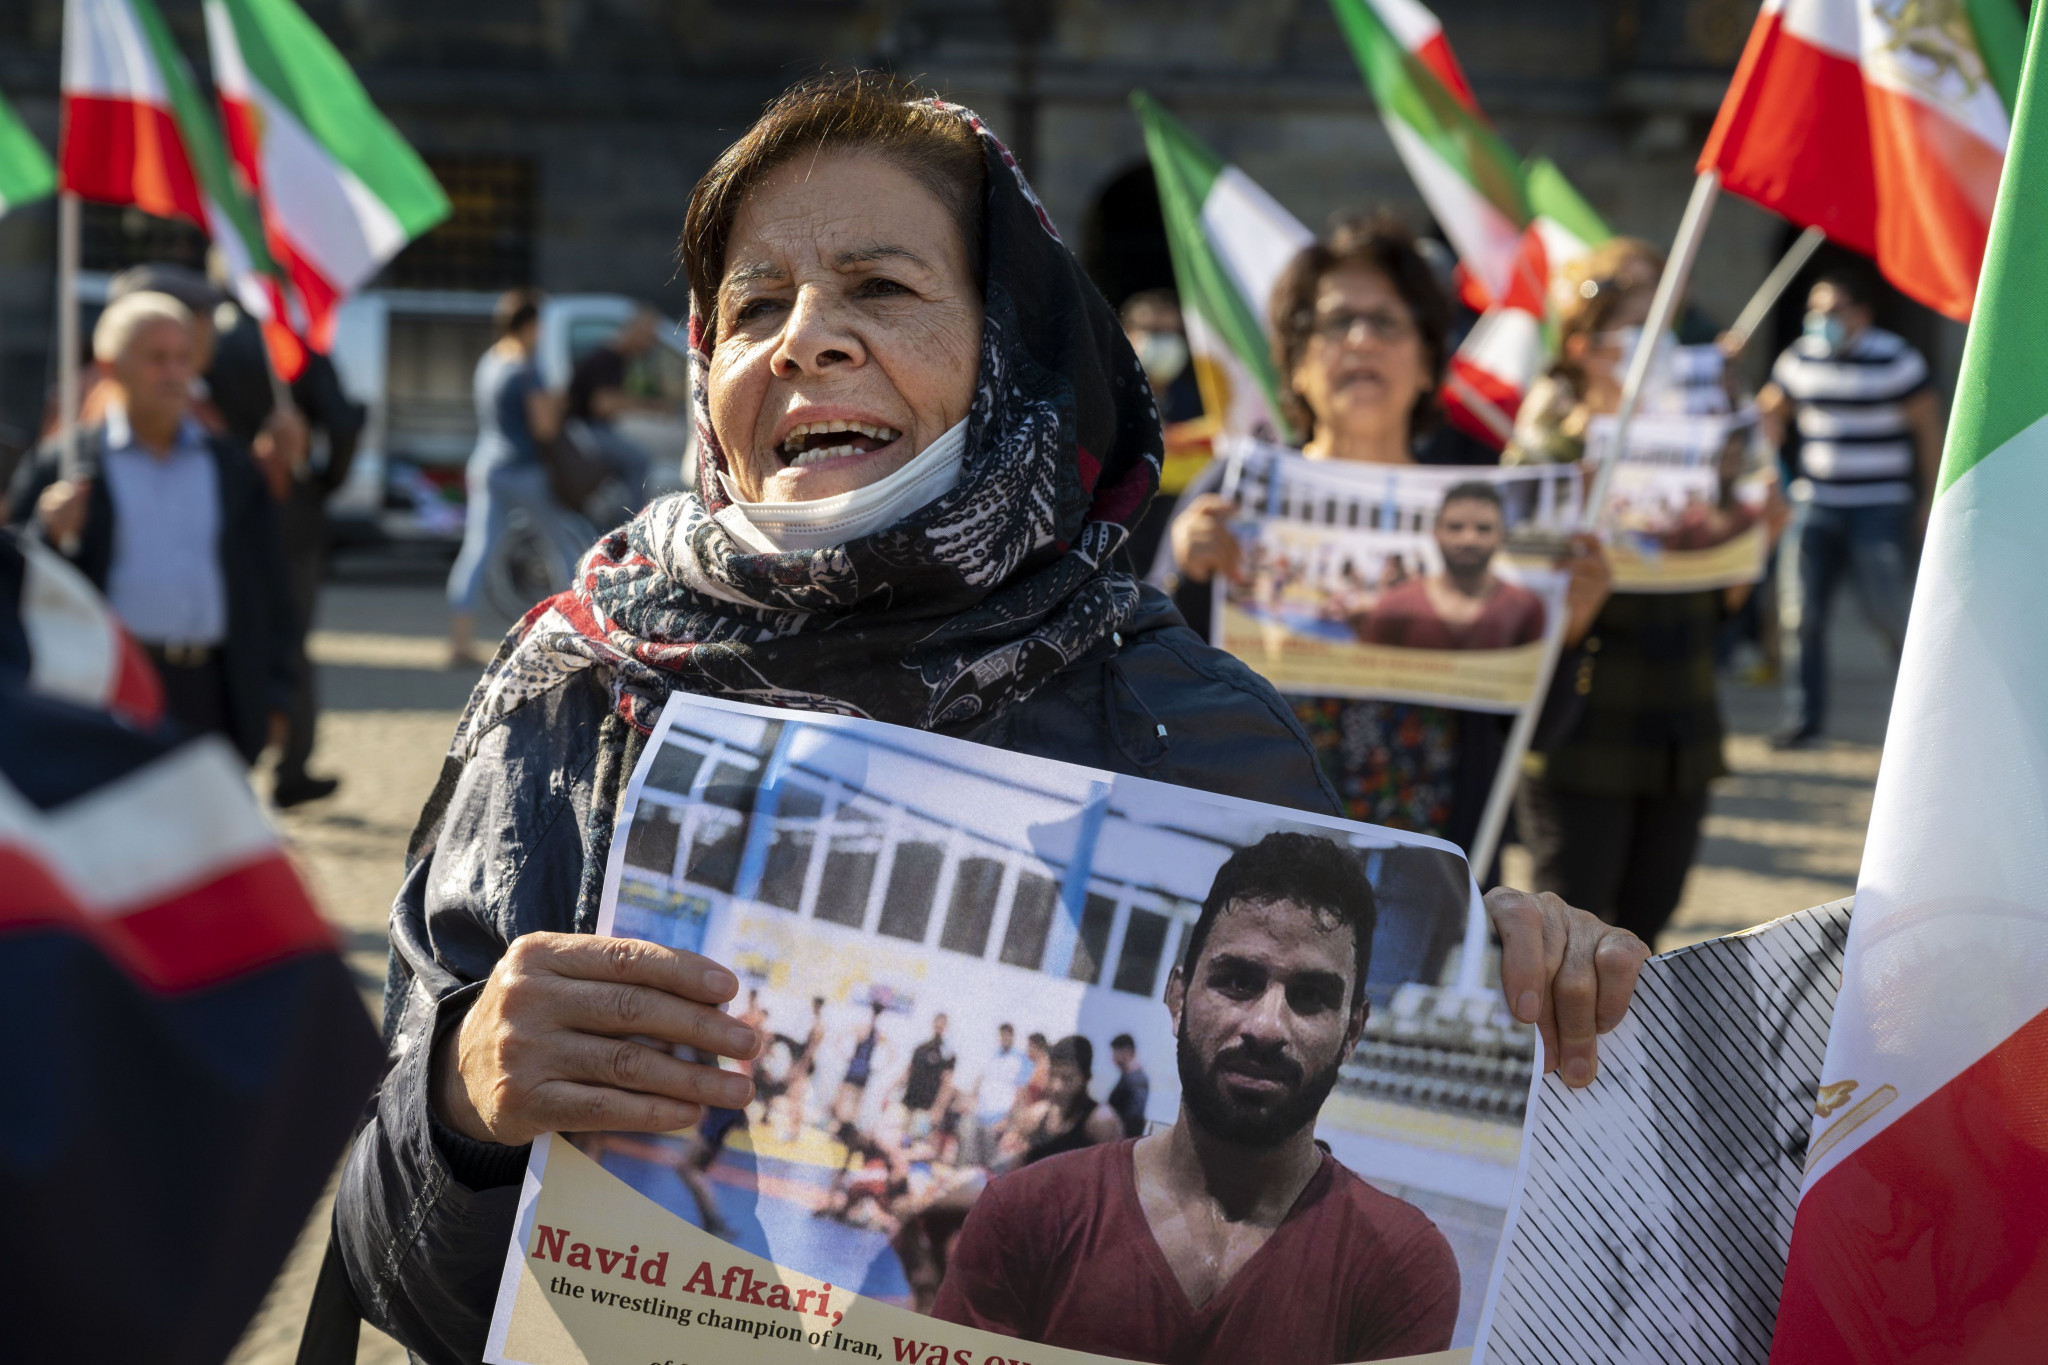 The execution of Iranian wrestler Navid Afkari in September caused widespread condemnation ©Getty Images